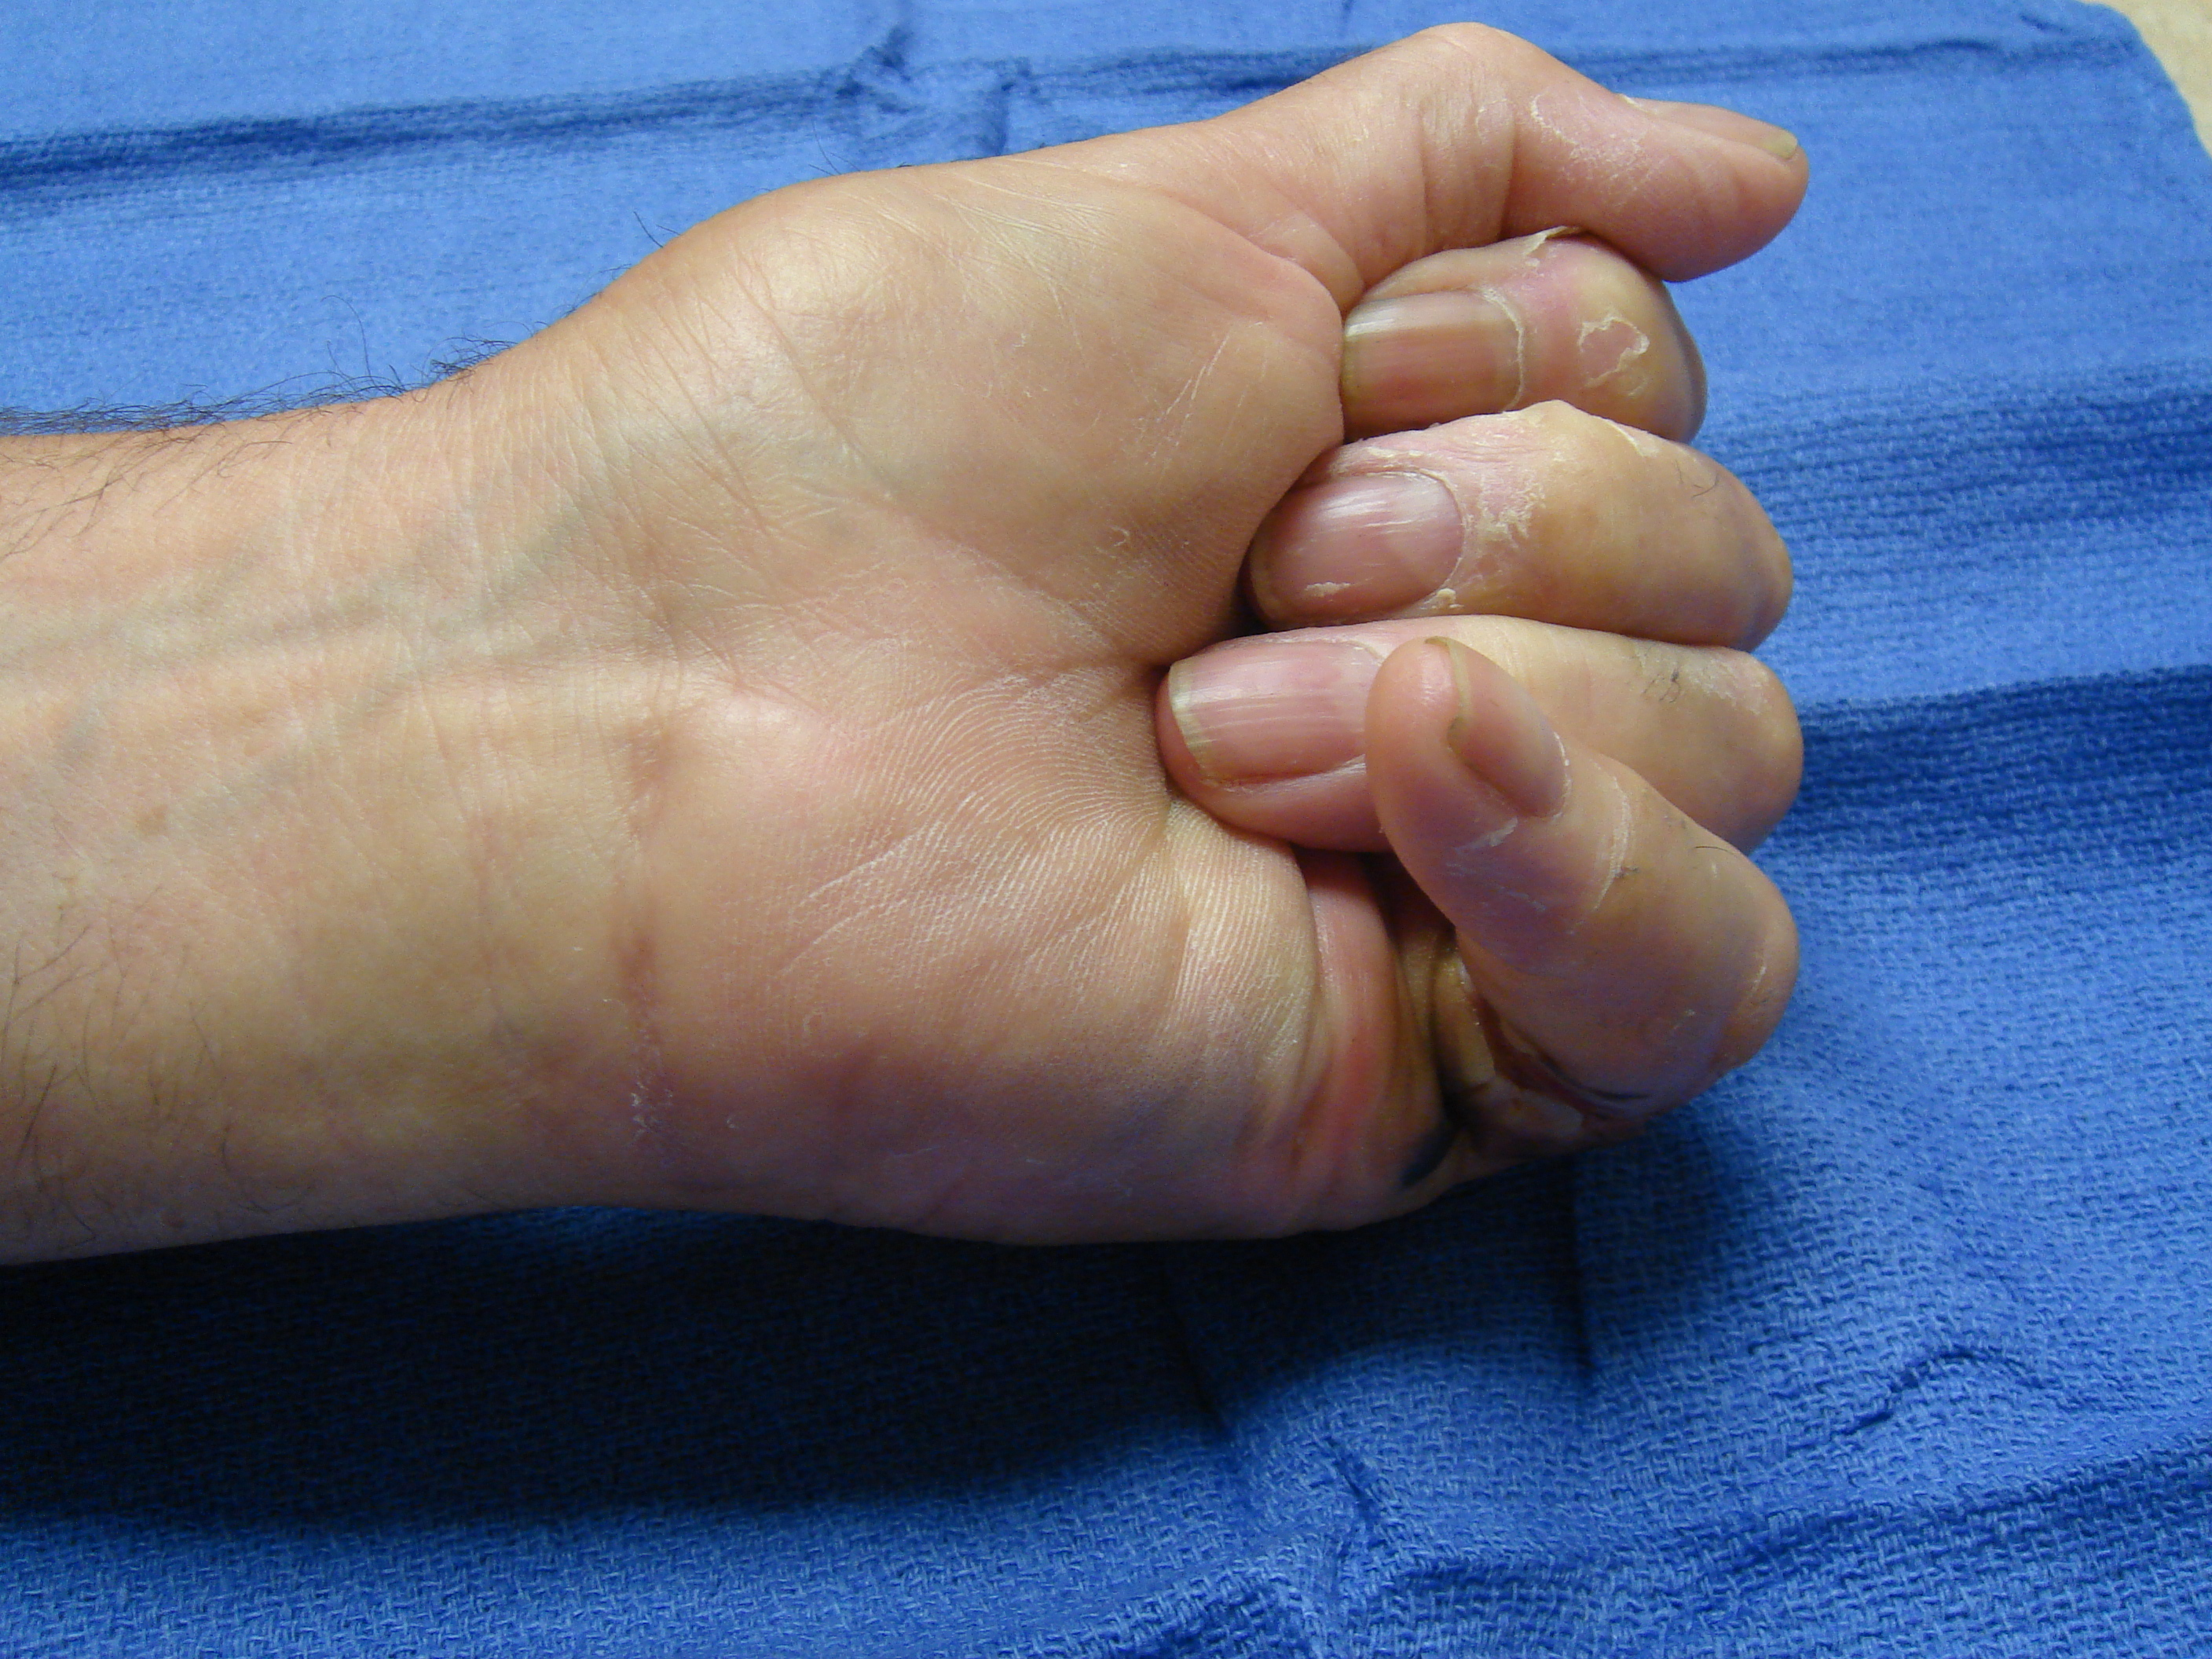 Figure 6f: Two weeks post-manipulation, the skin tear is granulating; he continues night MP+PIP extension splinting and has maintained active flexion.